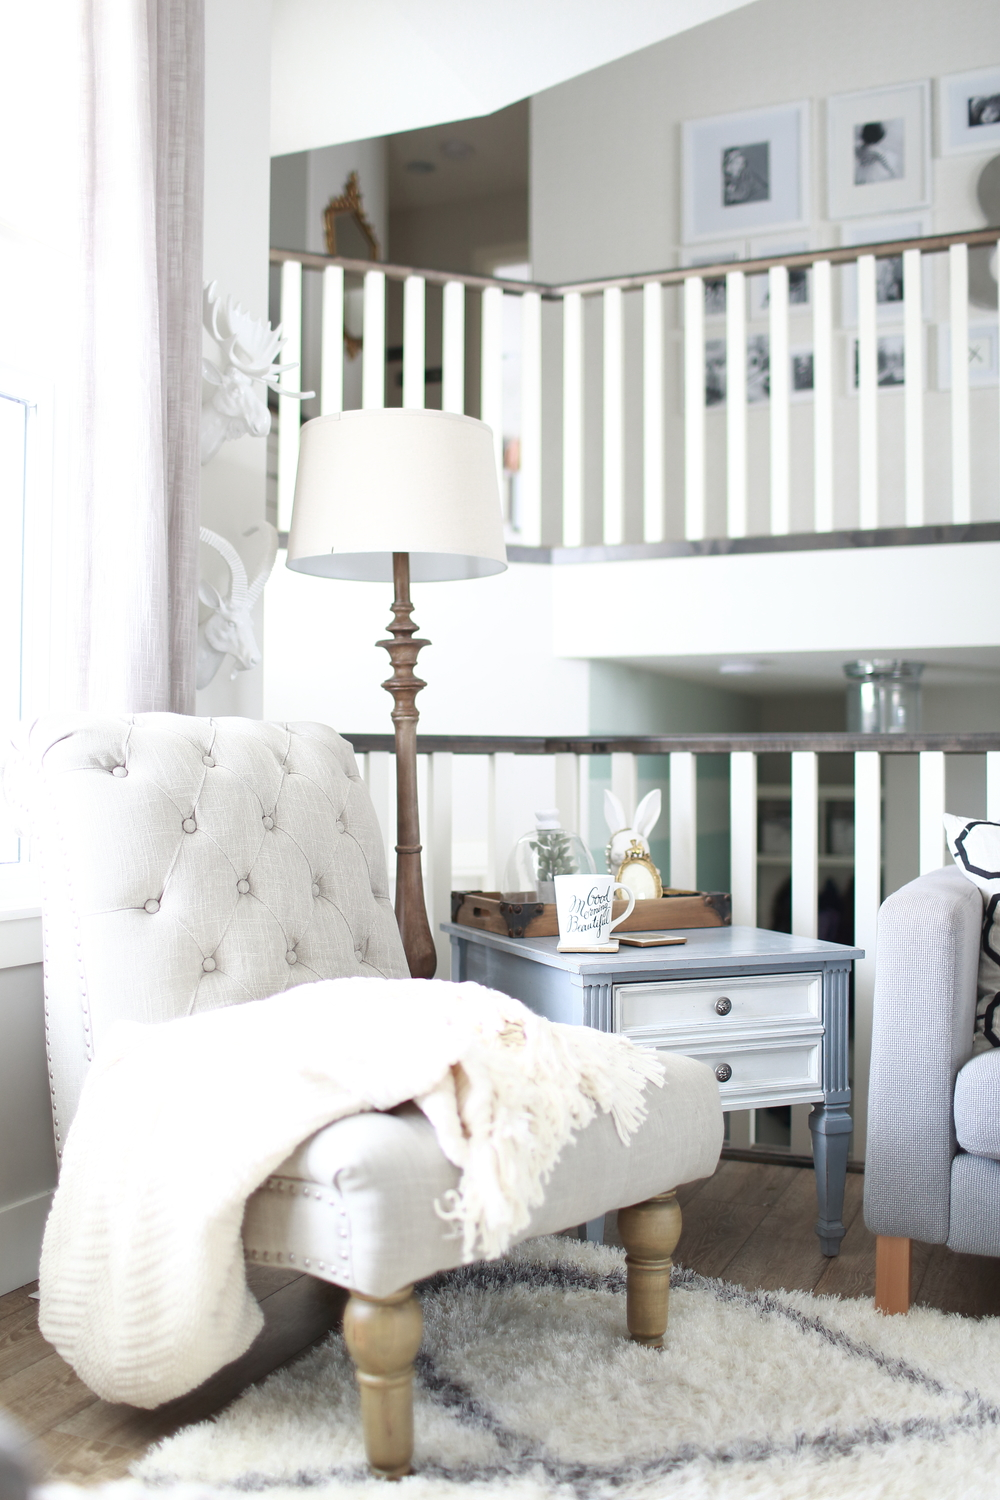 BRITTANY ROBERTSON HOME TOUR The School Of Styling